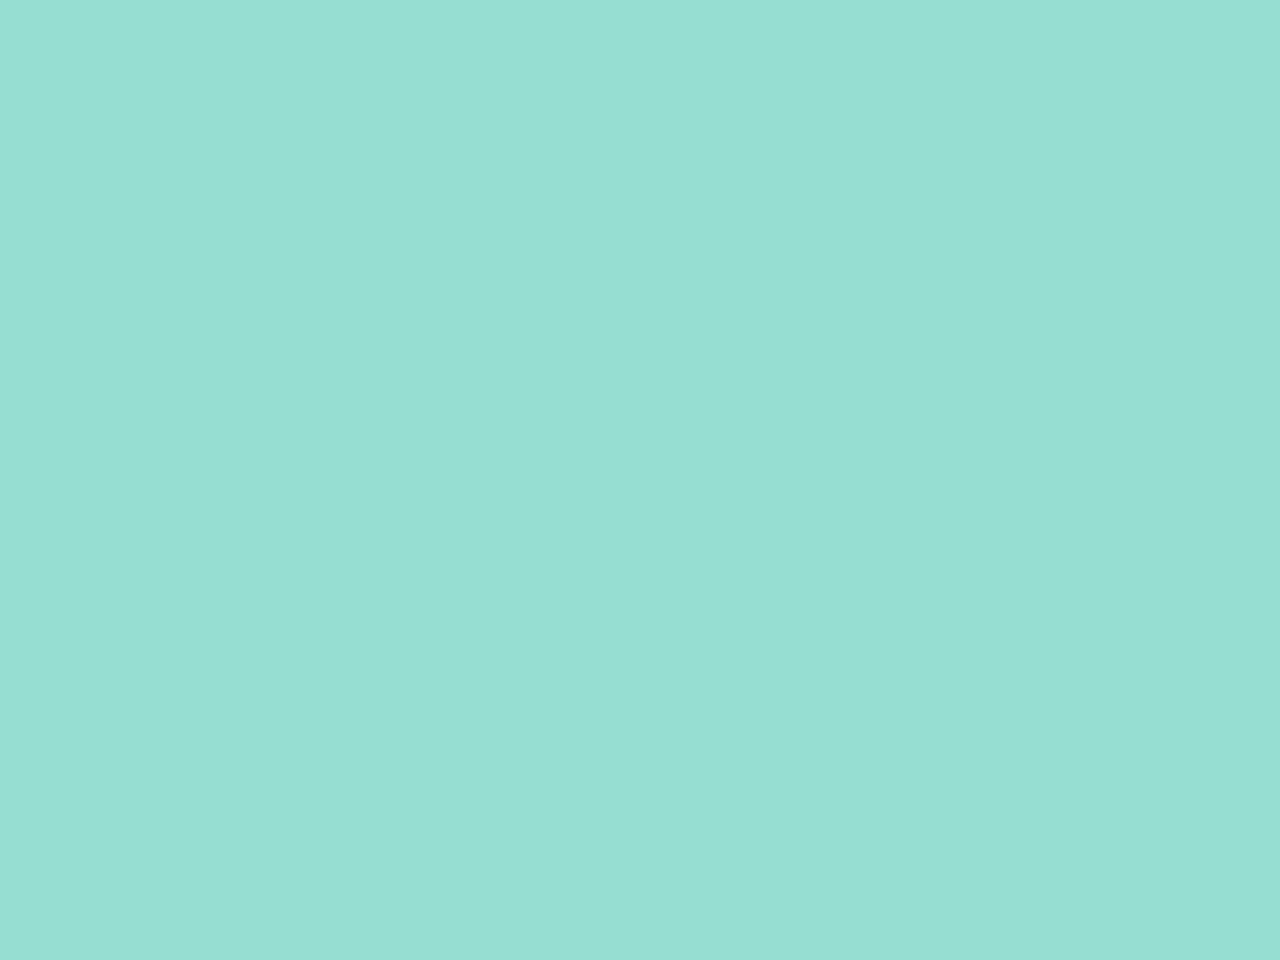 1280x960 Pale Robin Egg Blue Solid Color Background